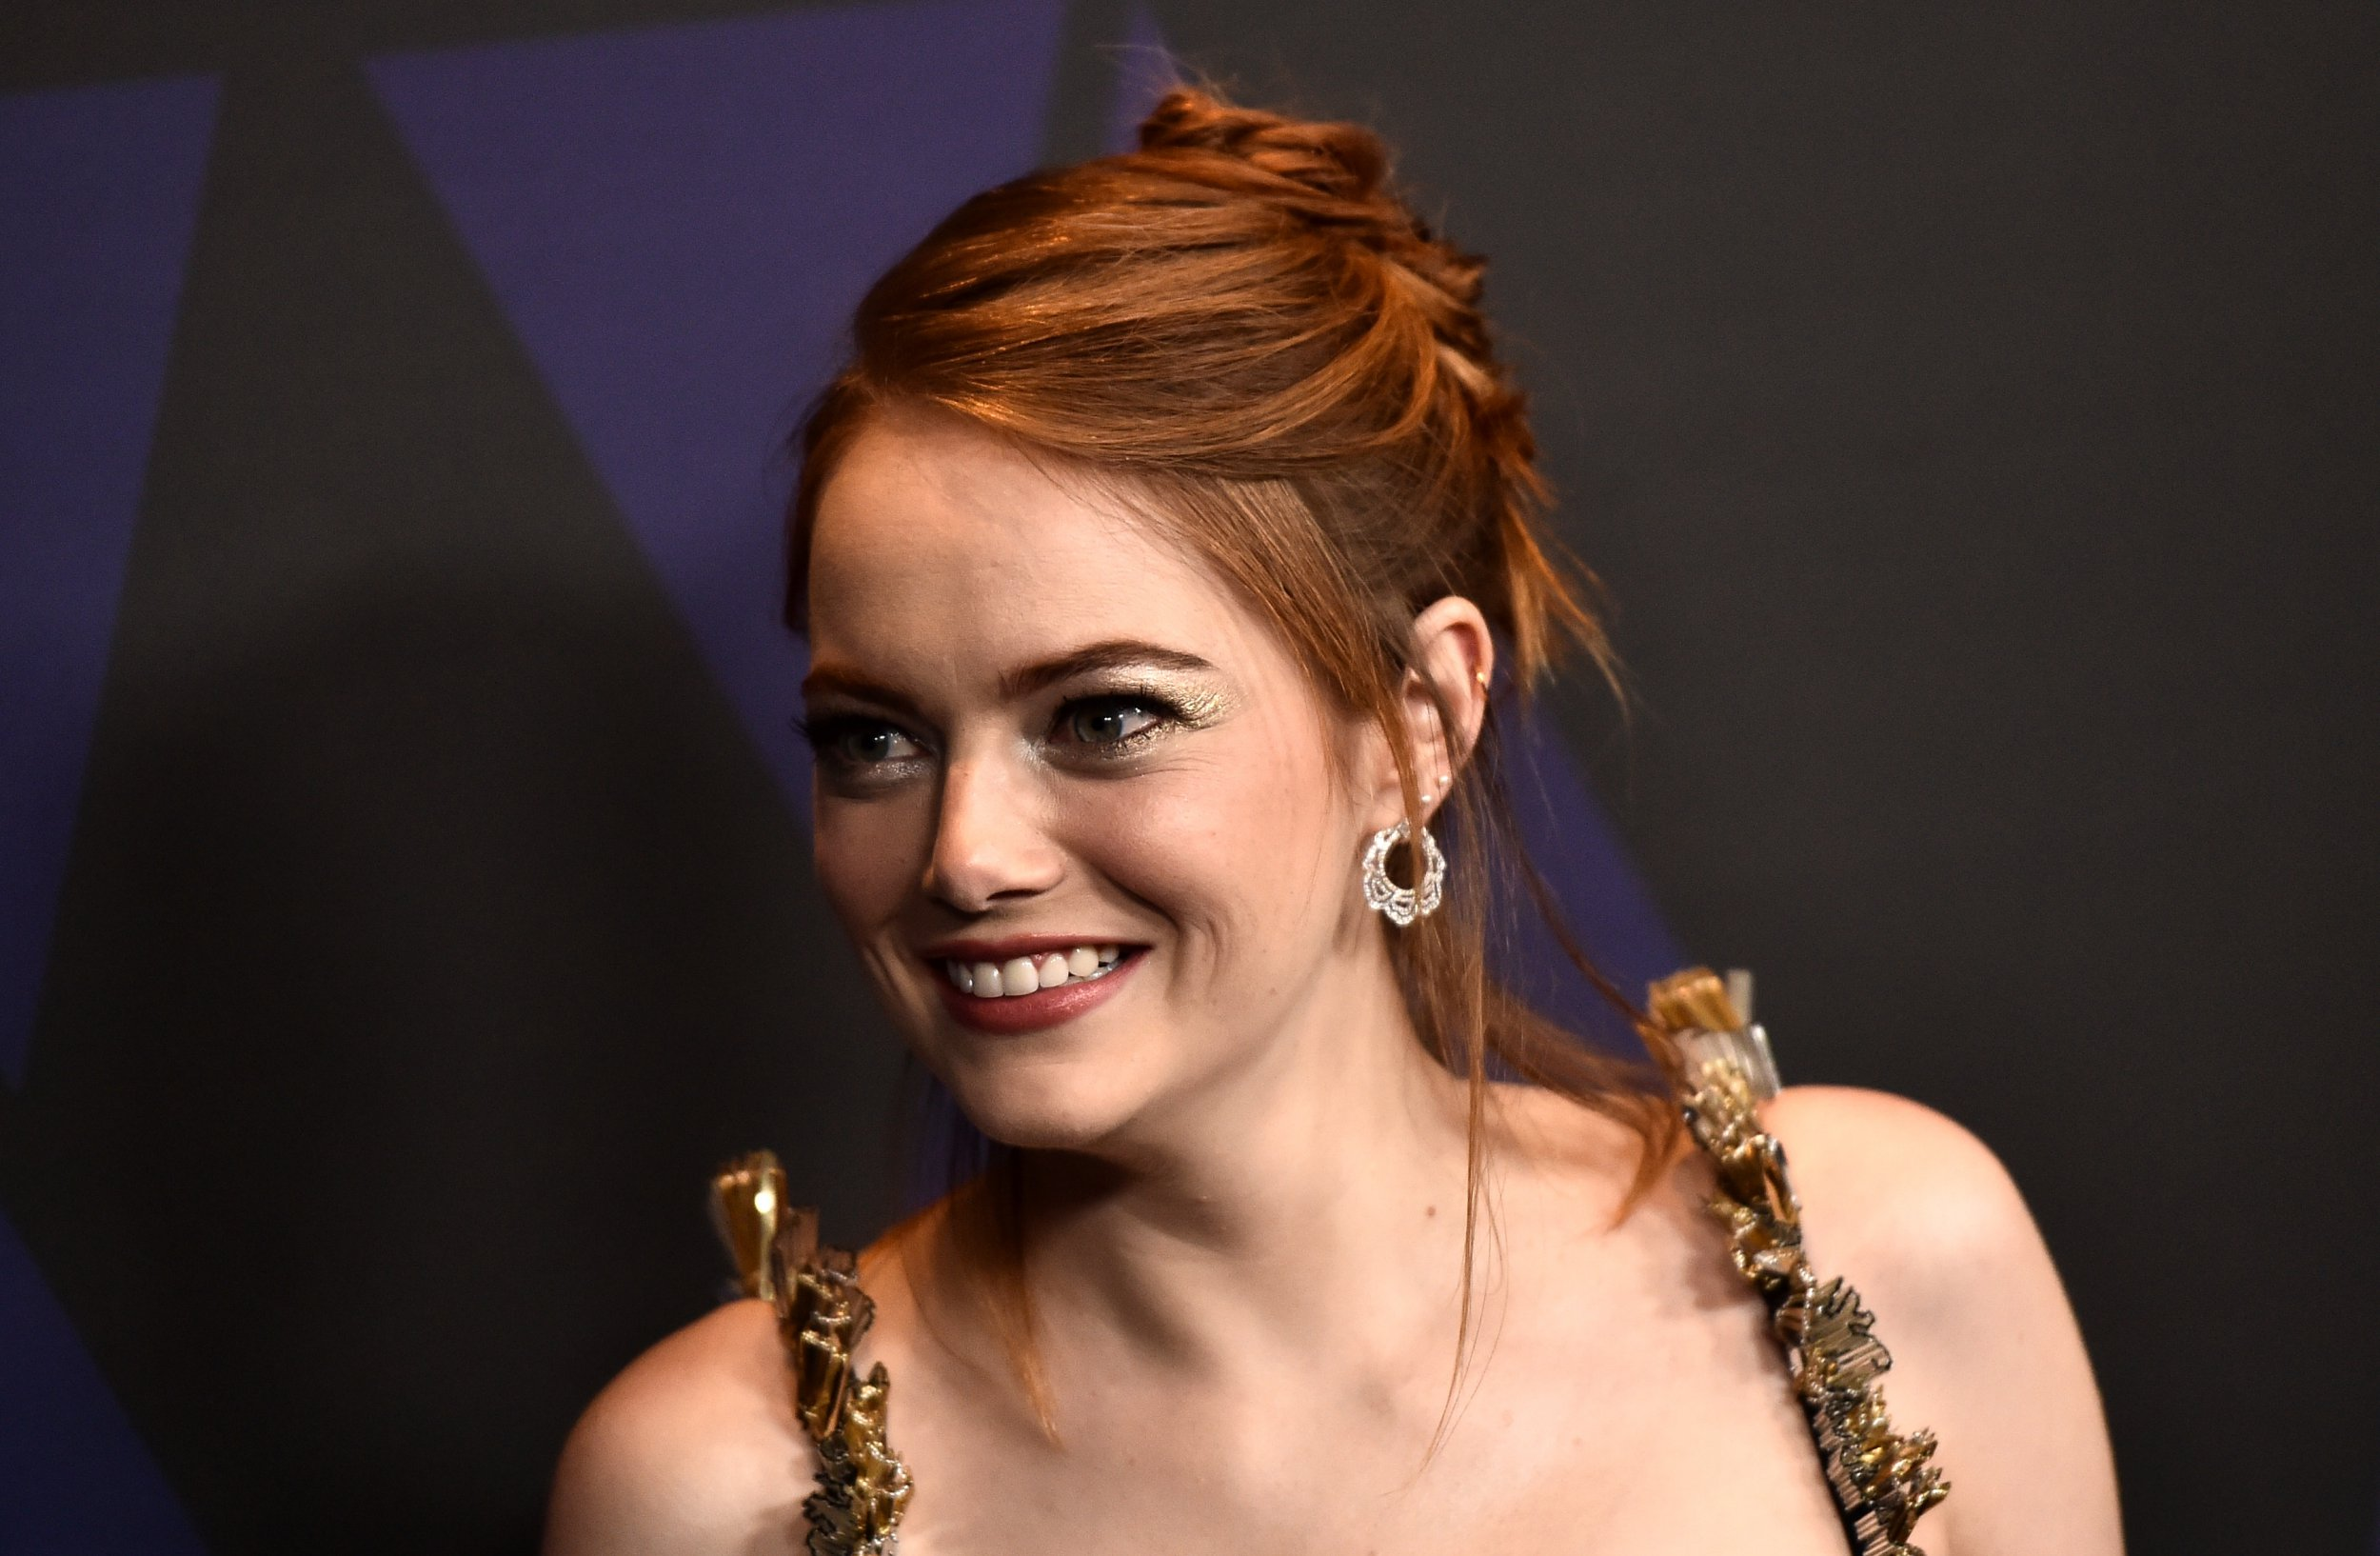 Emma Stone 'got gloomy' after turning 30 and says she is 'still finding her voice'